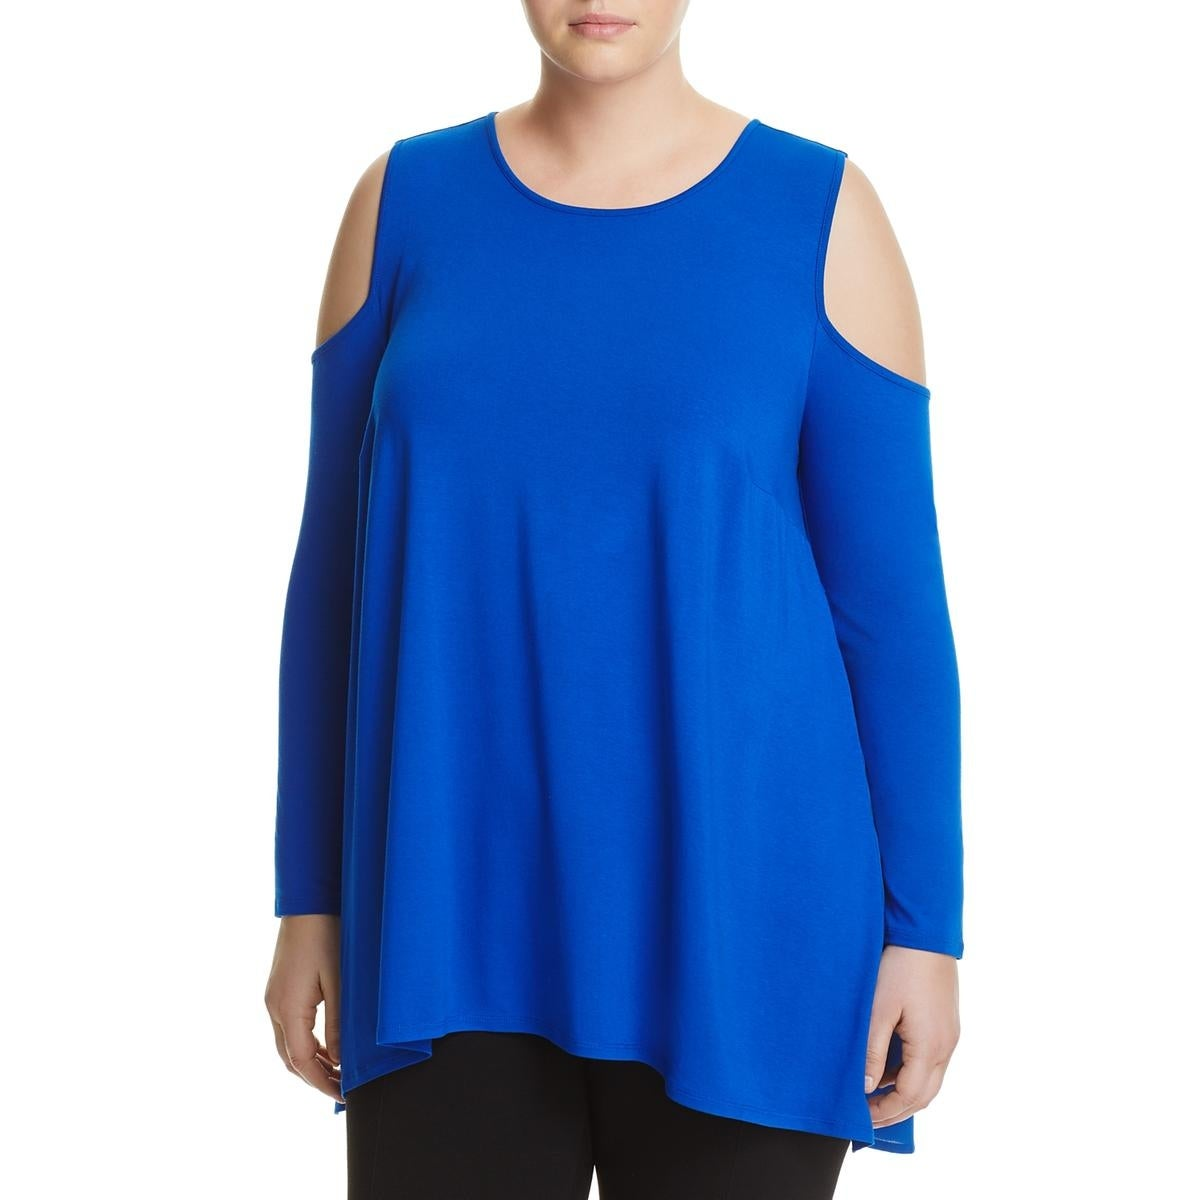 3a7989f98ad88b Shop Vince Camuto Womens Plus Casual Top Hi-Low Keyhole - Free Shipping On  Orders Over $45 - Overstock - 18418092